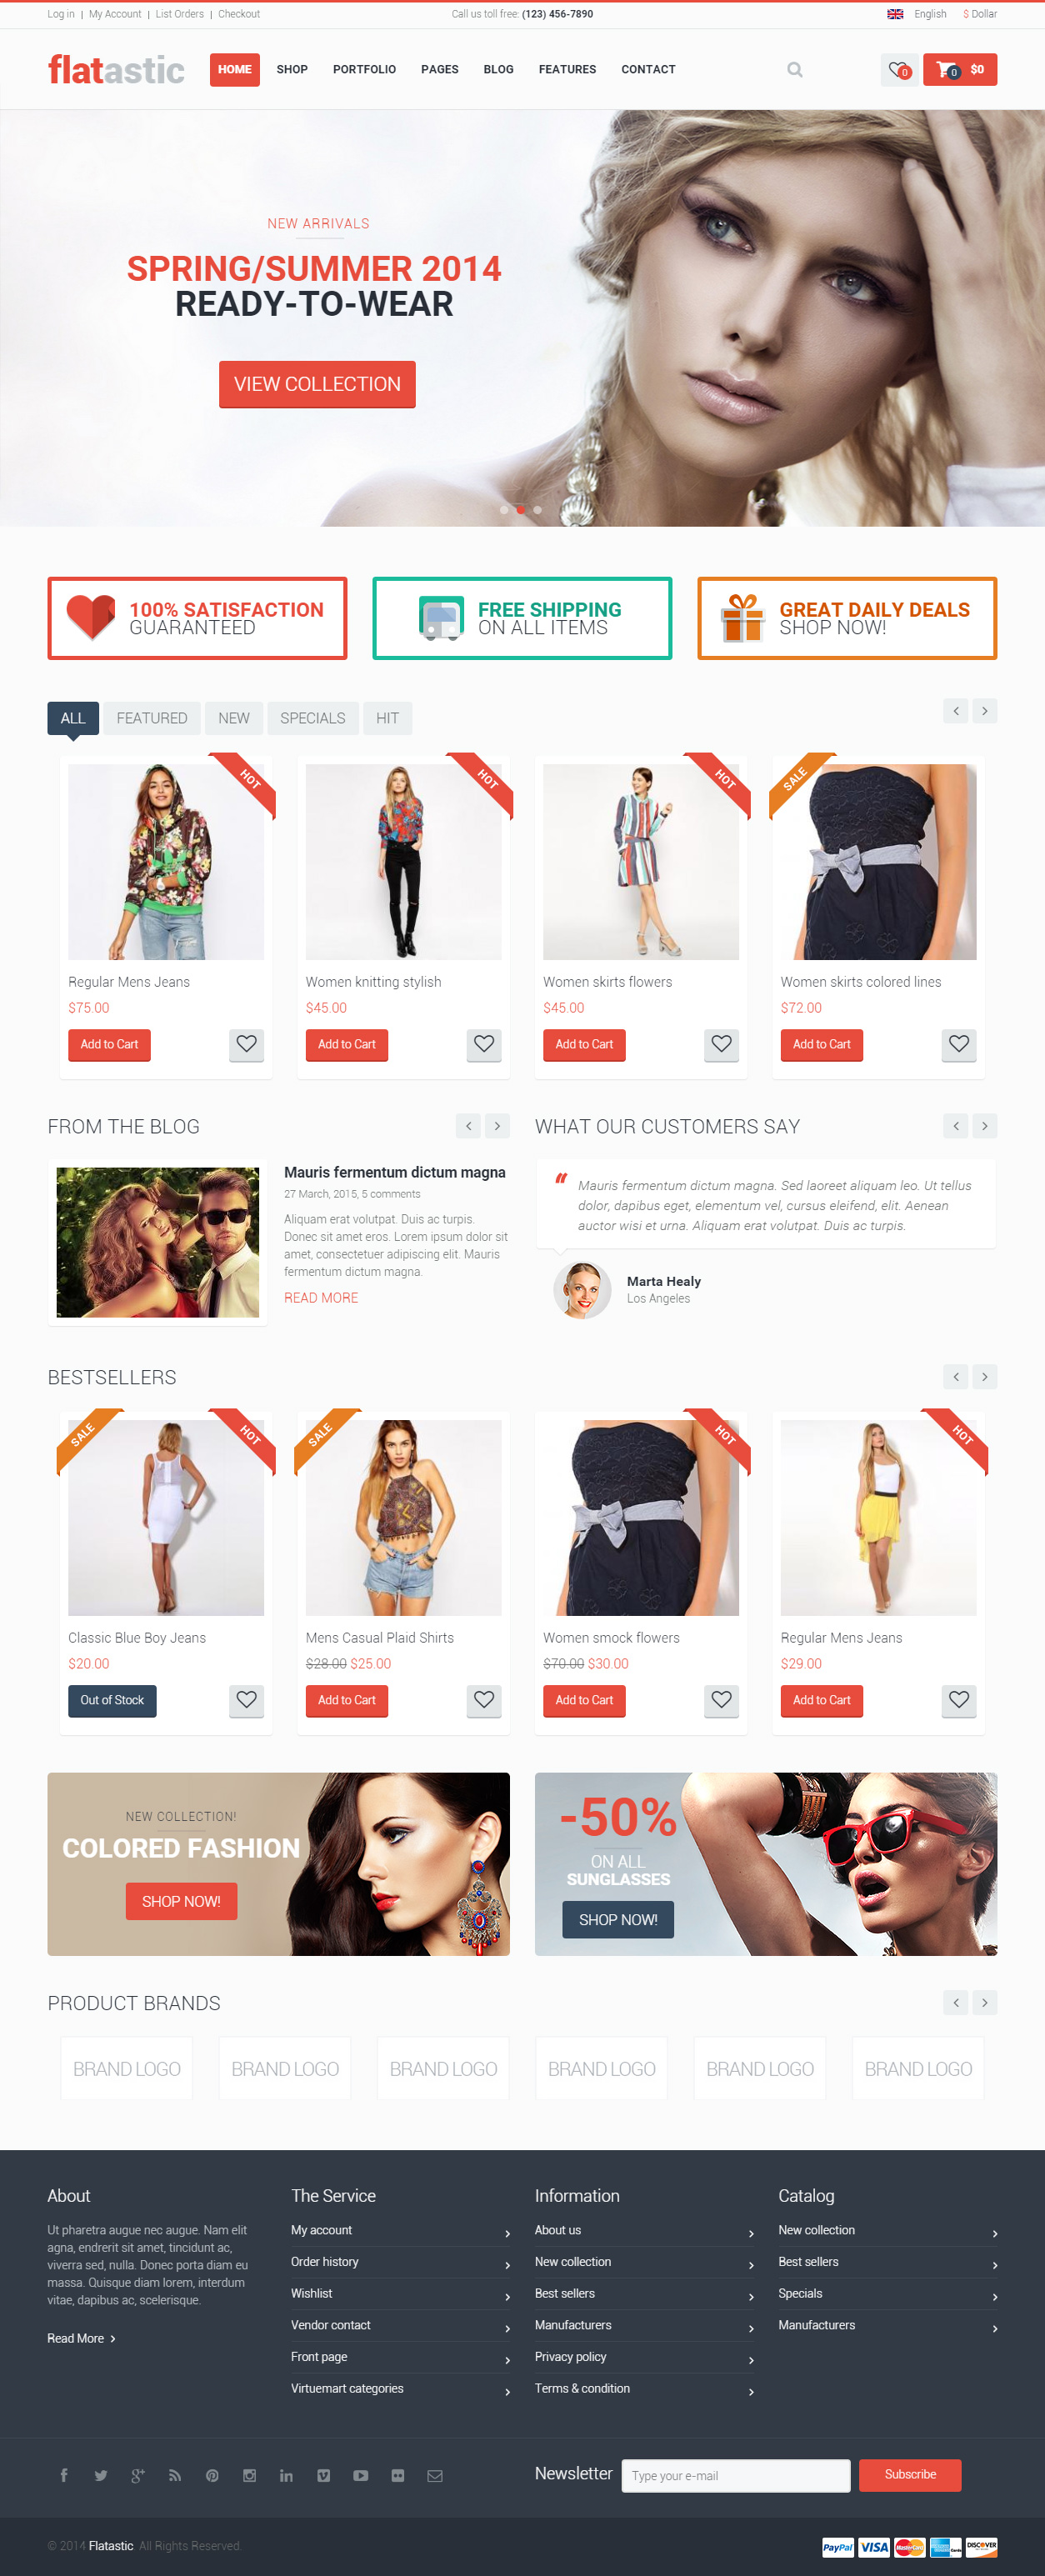 20+ Best Responsive Drupal Commerce Themes 2017 - Responsive Miracle